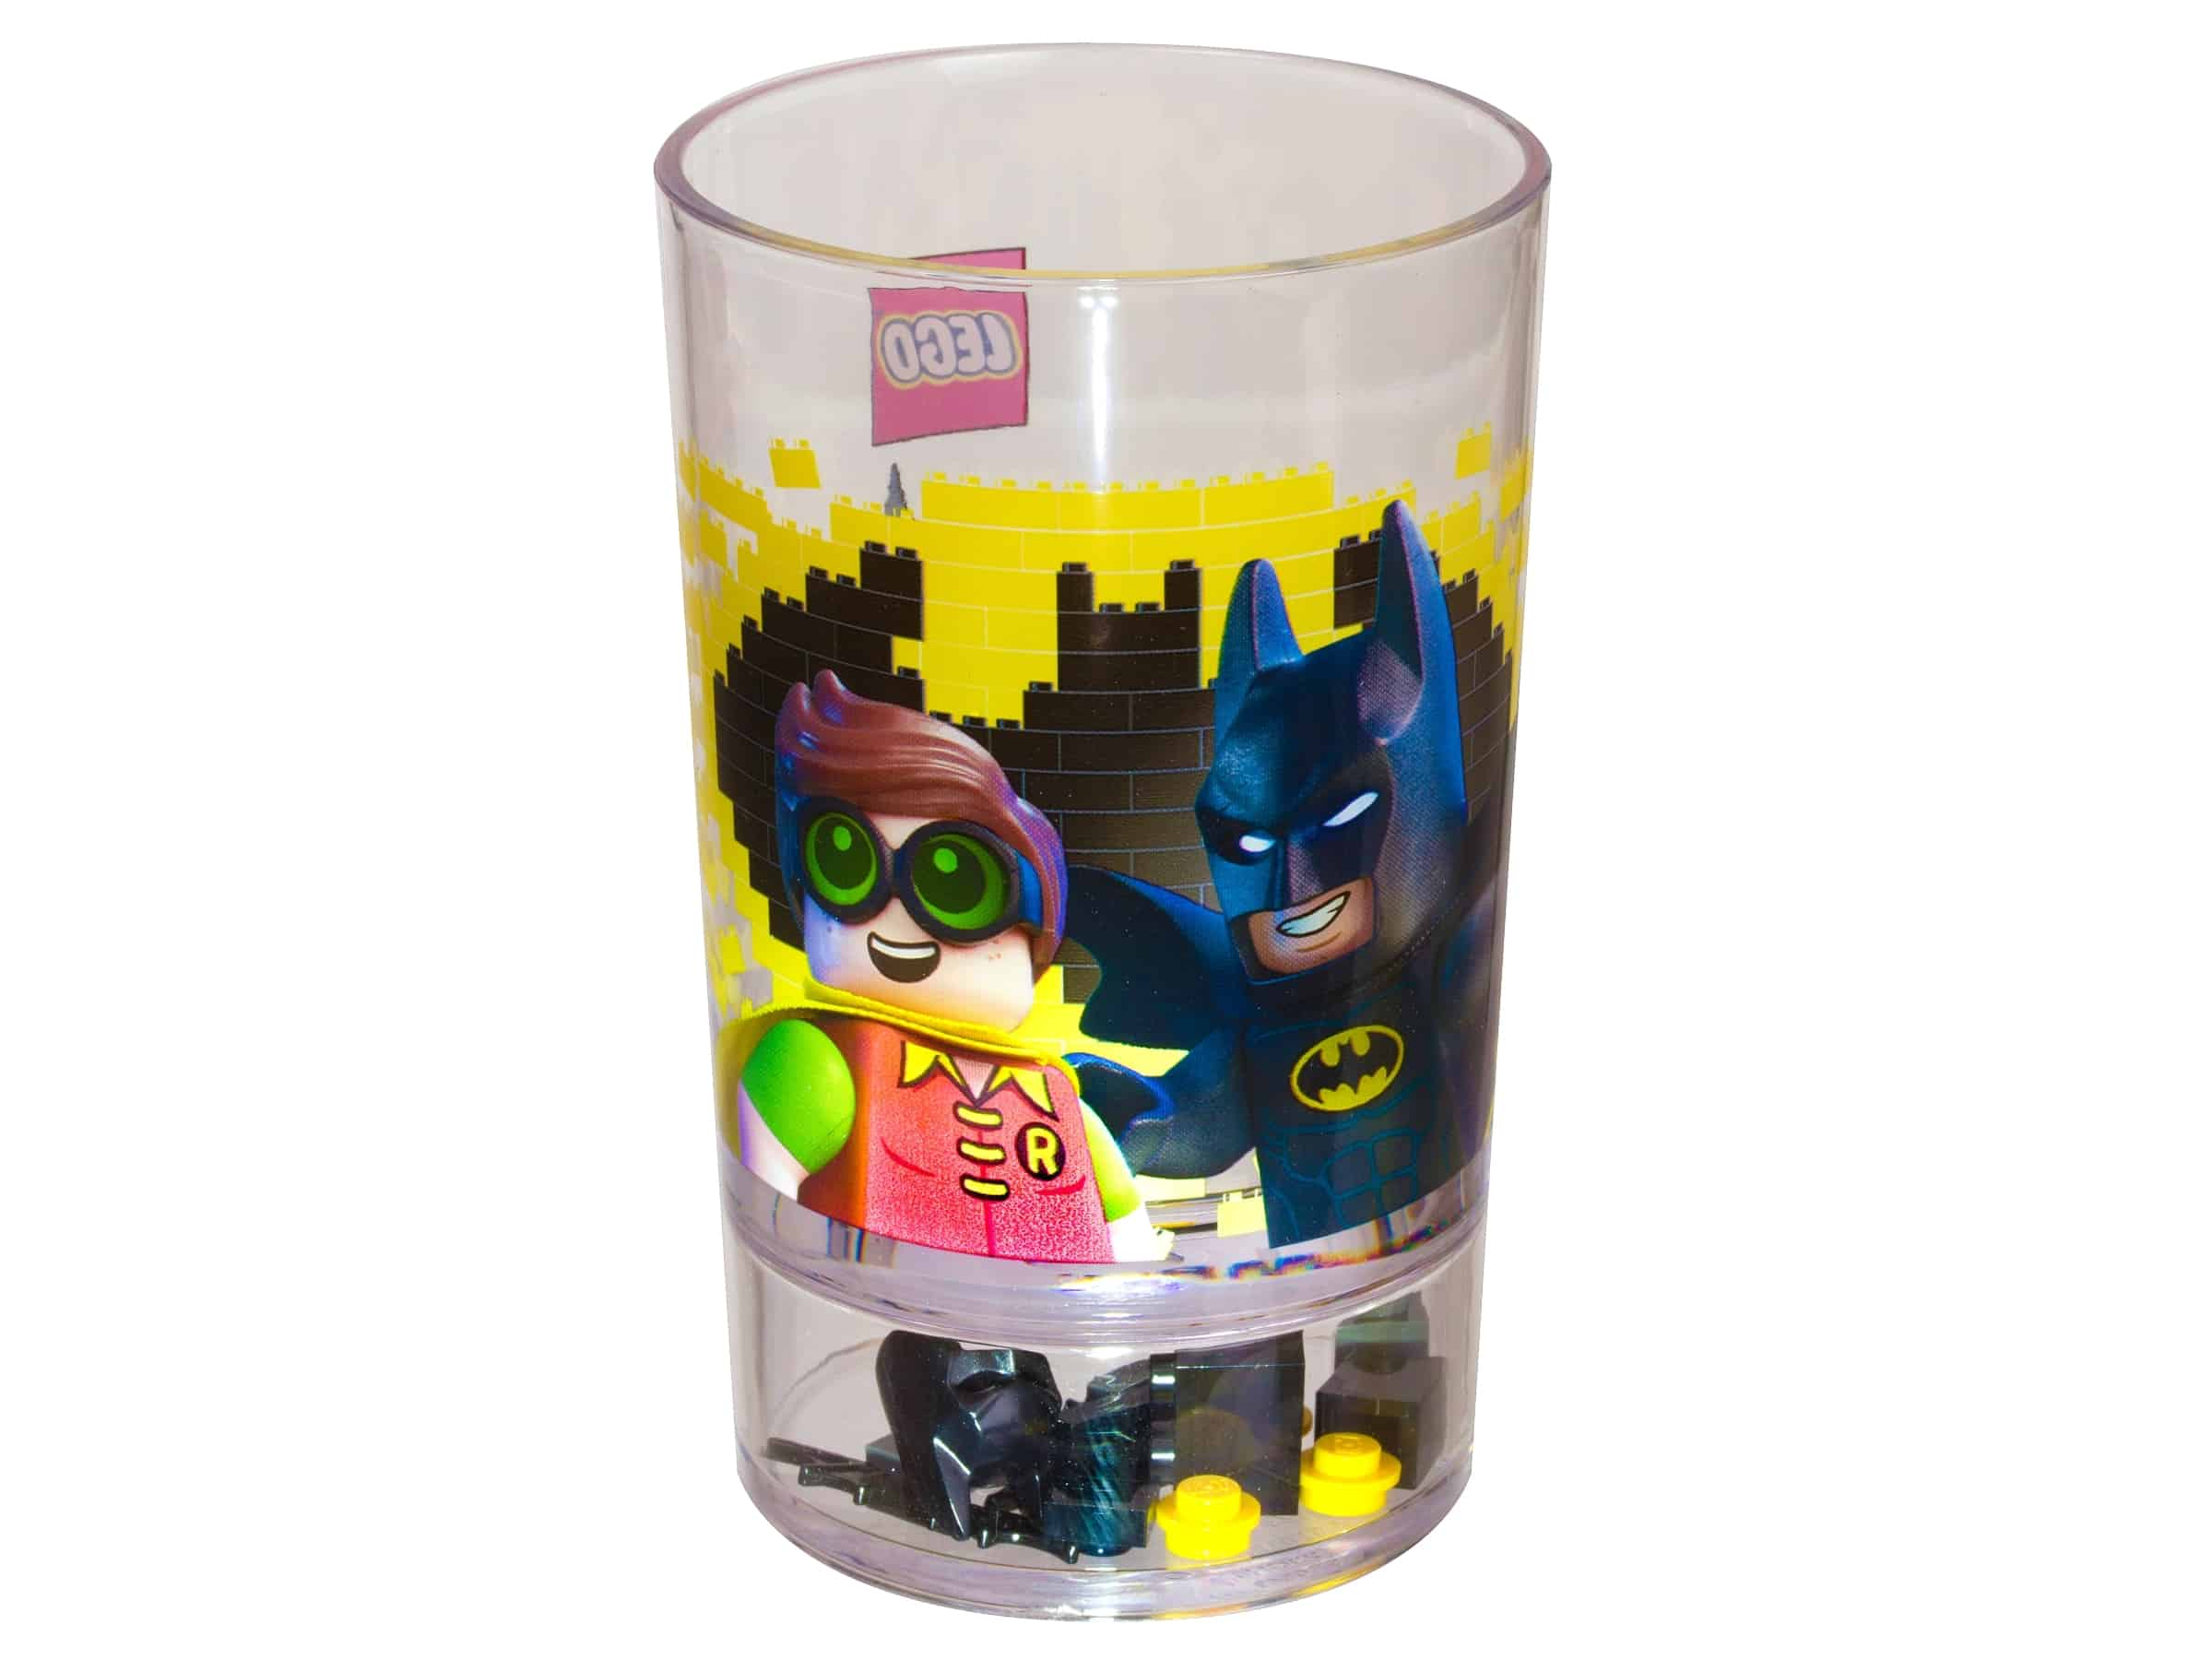 de lego batman film batman drinkbeker 853639